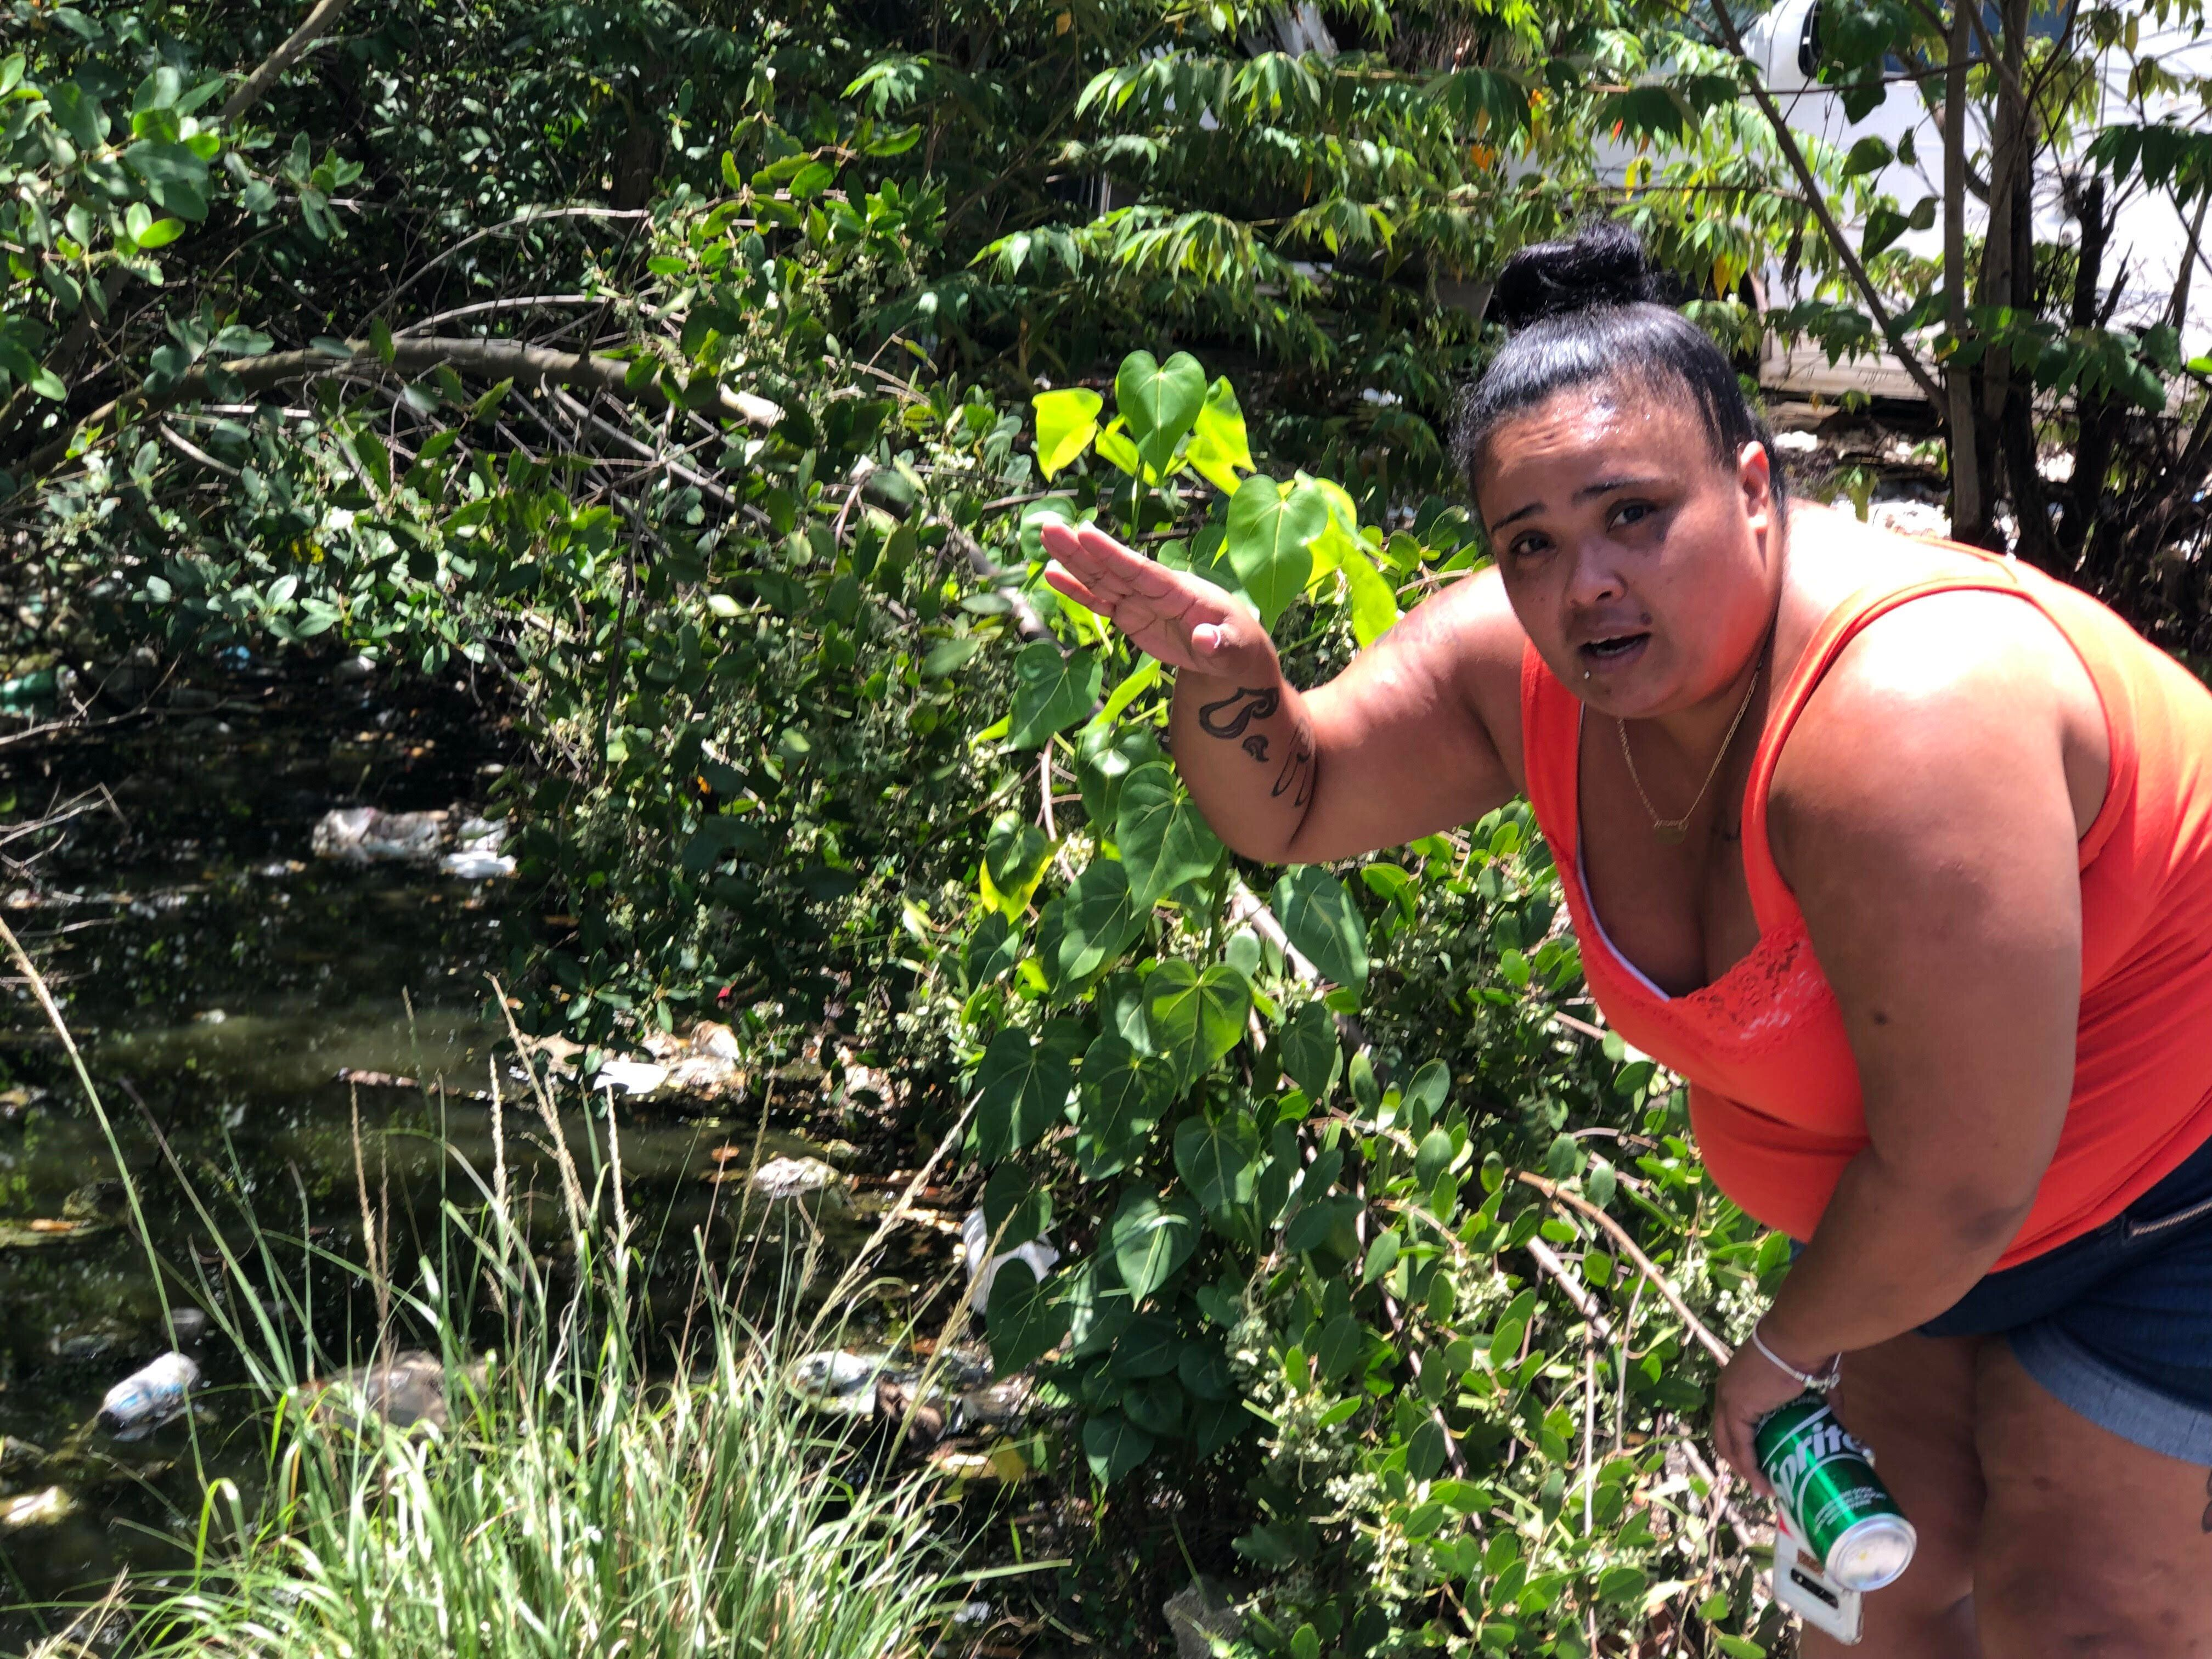 Milagros Figueroa gestures next to Caño Martín Peña, a nearly four-mile polluted canal that she said flo